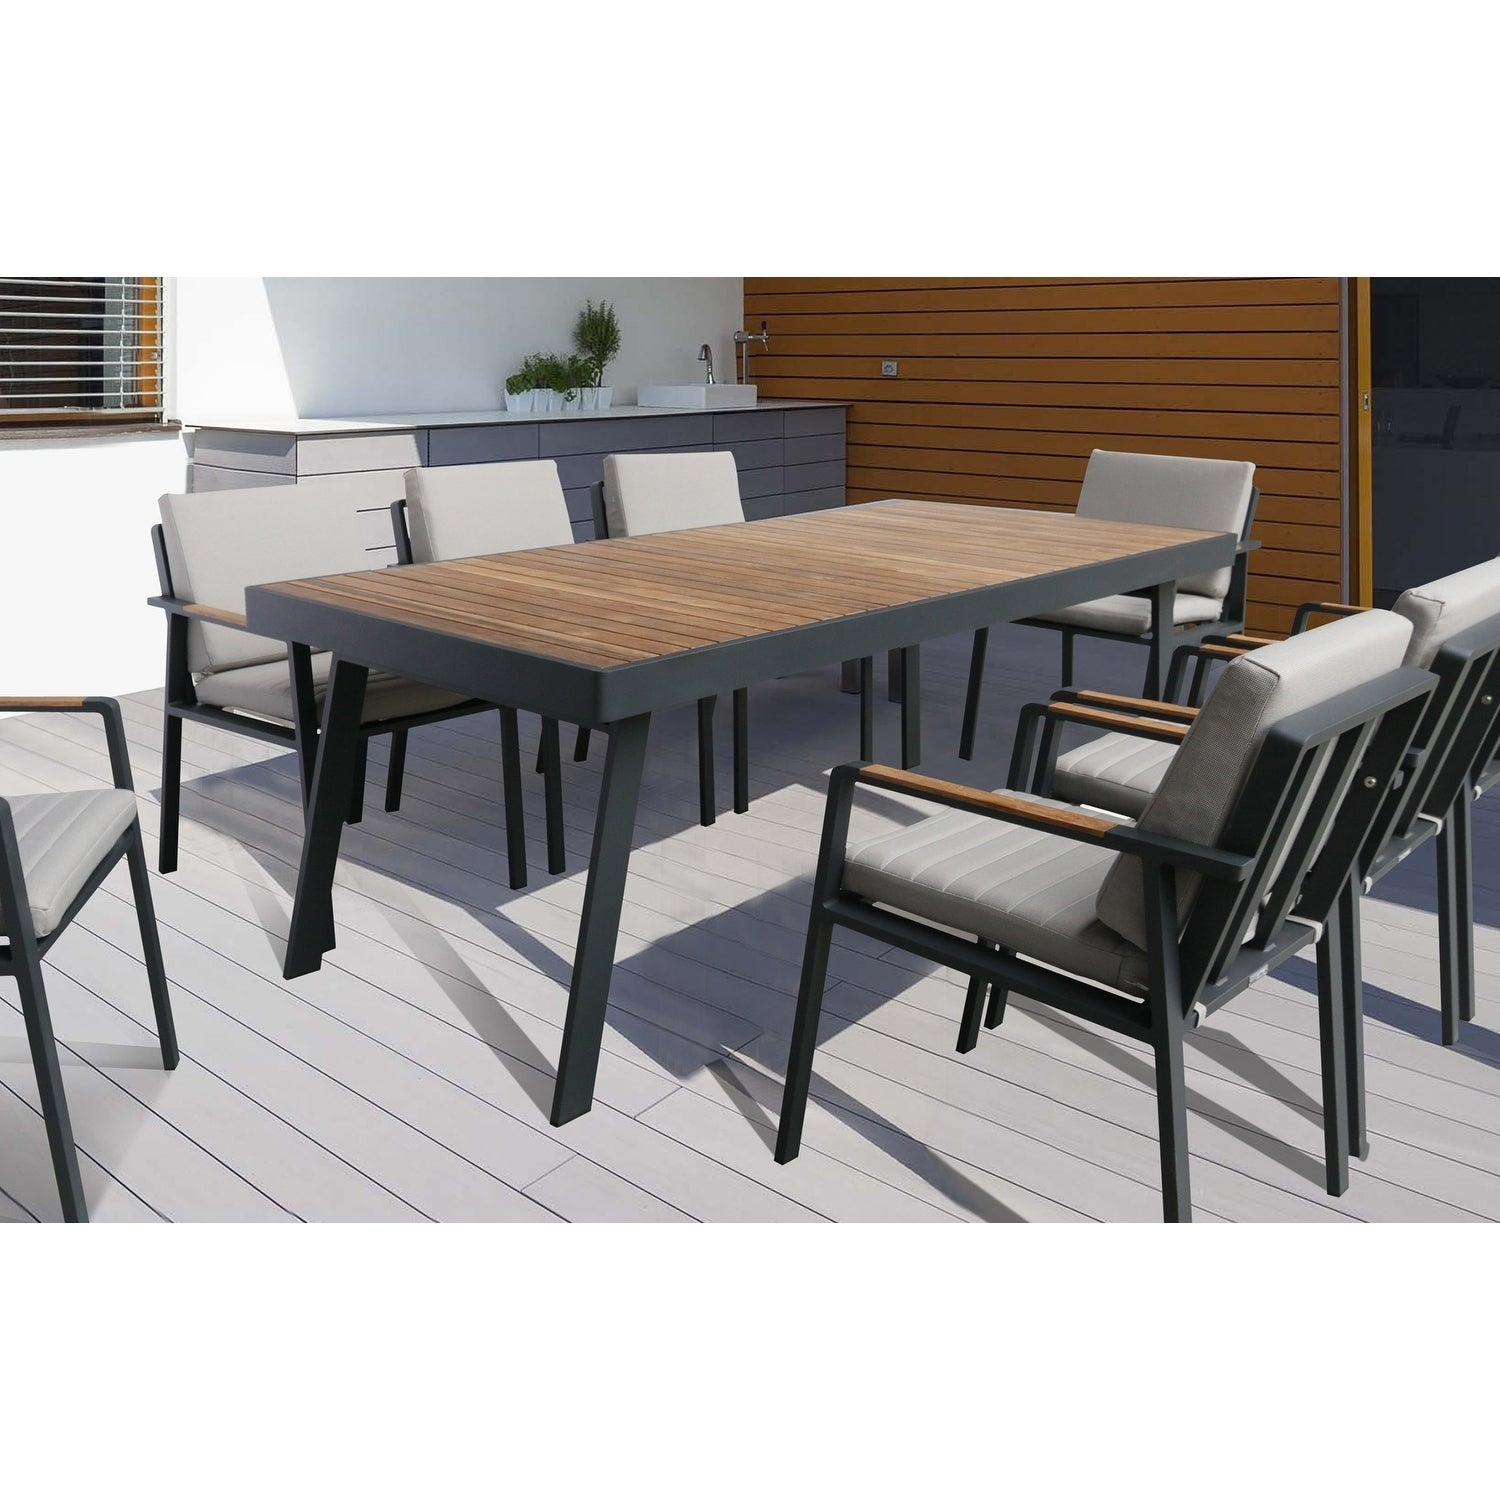 Armen living nofi outdoor patio dining table in charcoal finish with teak wood top